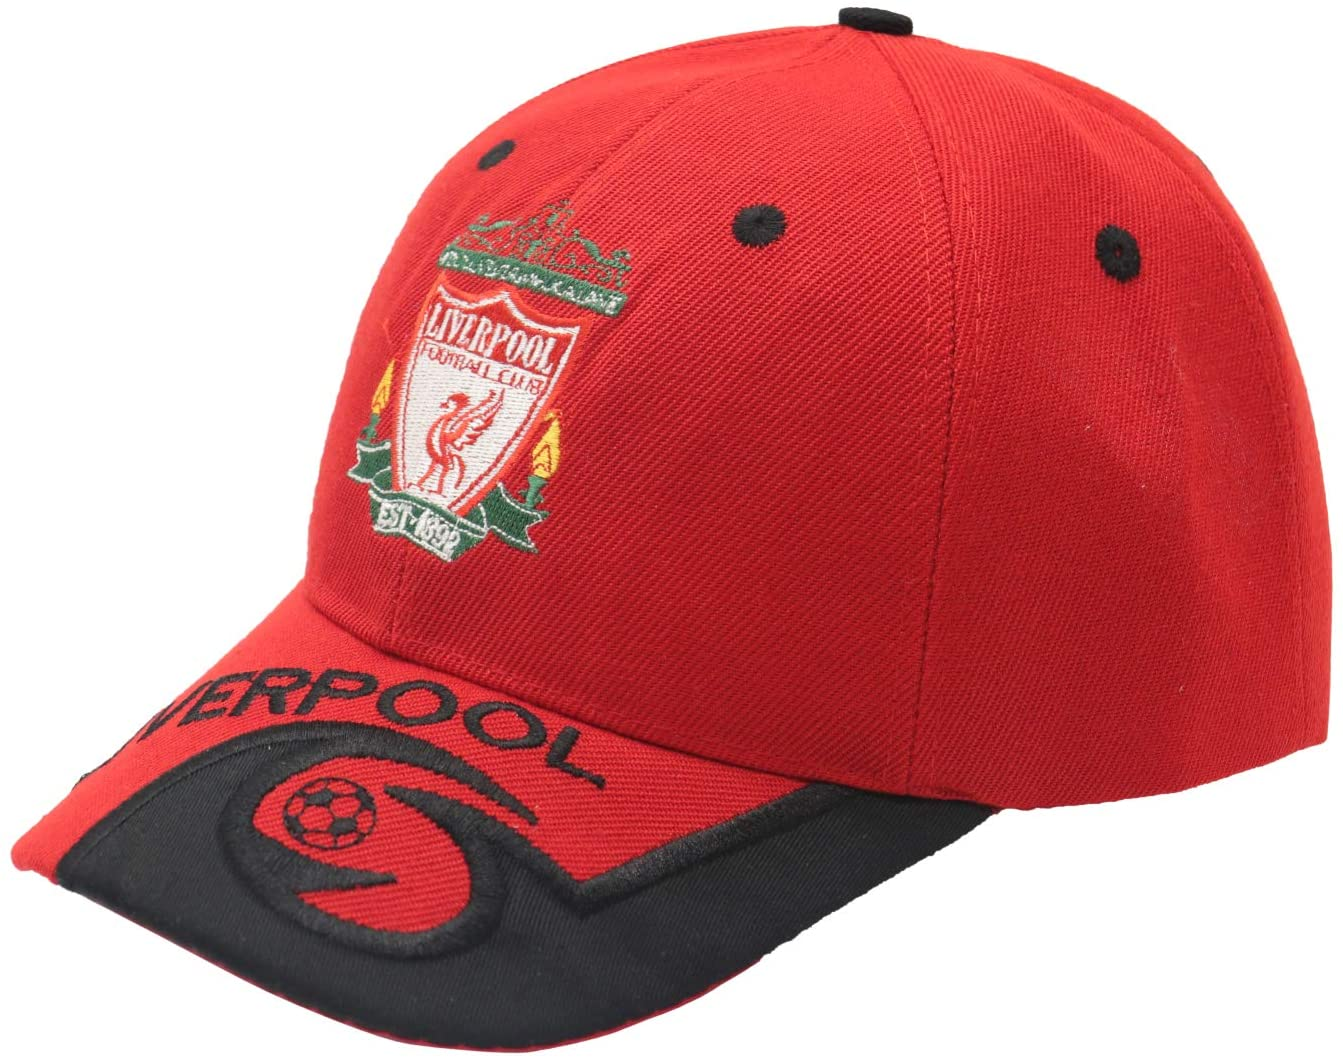 Fanbeanie Liverpool Soccer FC Cap Embroide Red Adjustable EPL Baseball Cap